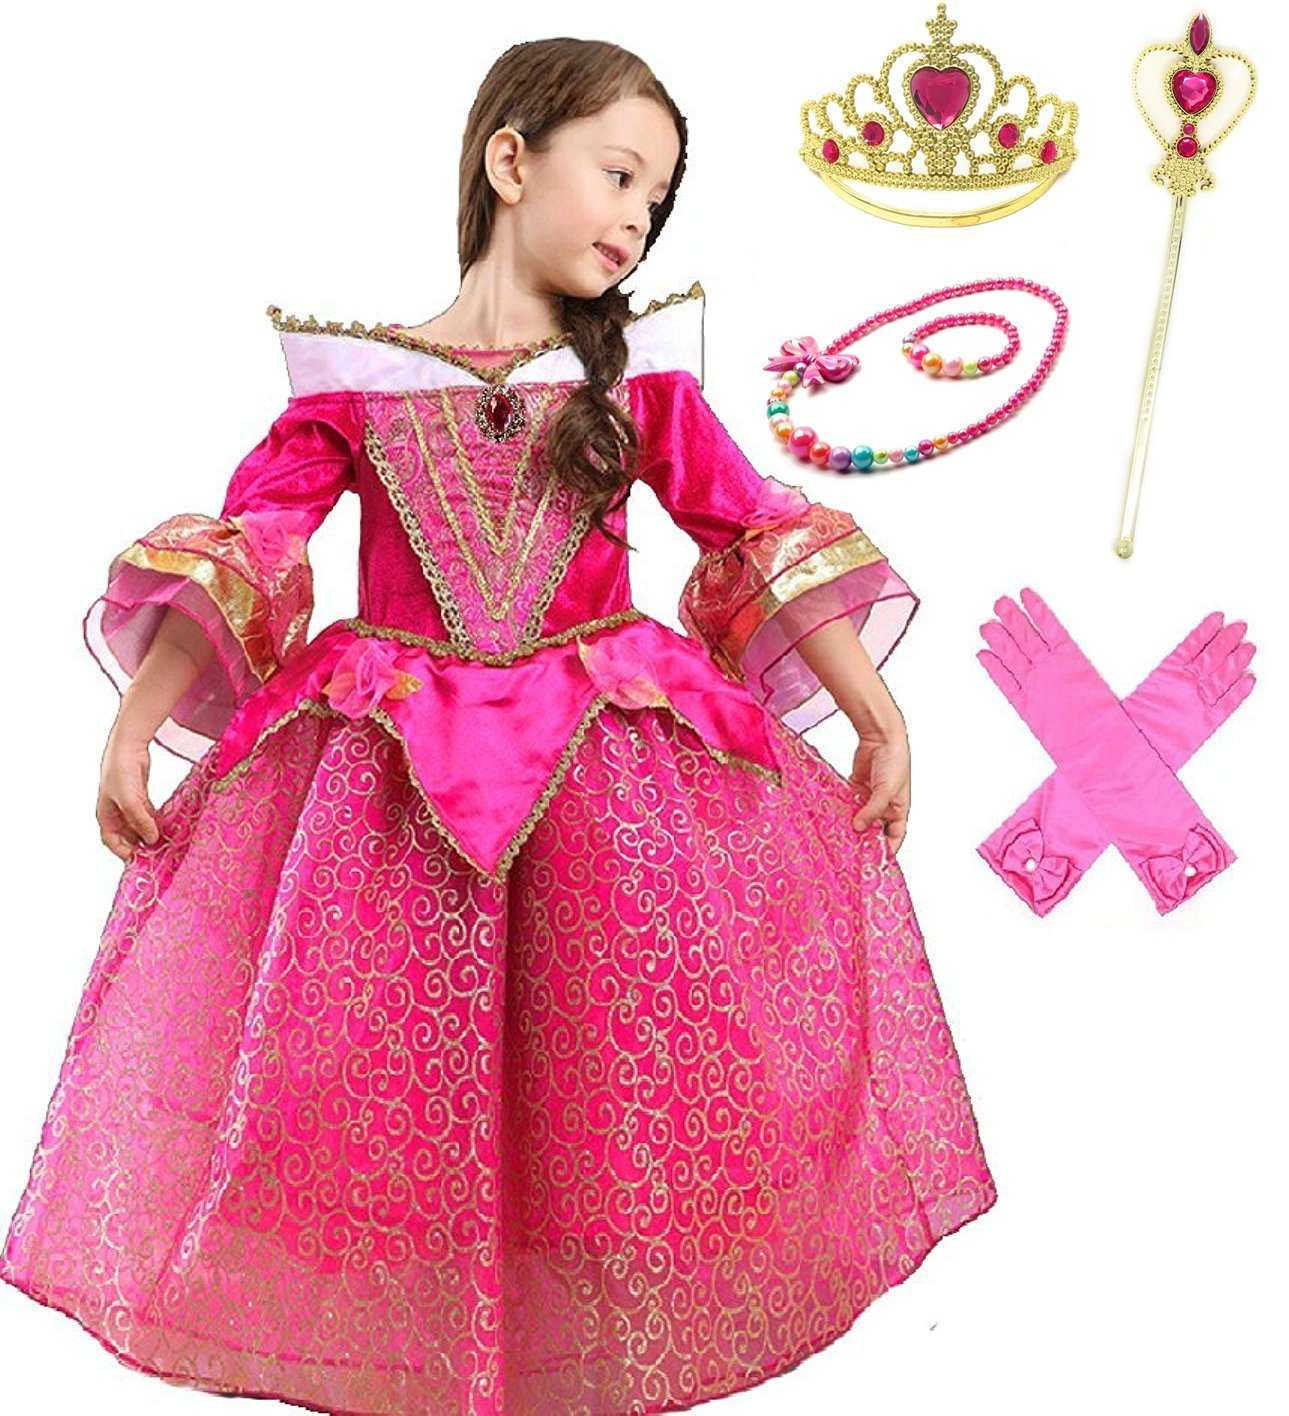 Romy's Collection Princess Aurora Deluxe Pink Party Dress Costume (6-7, Style3)